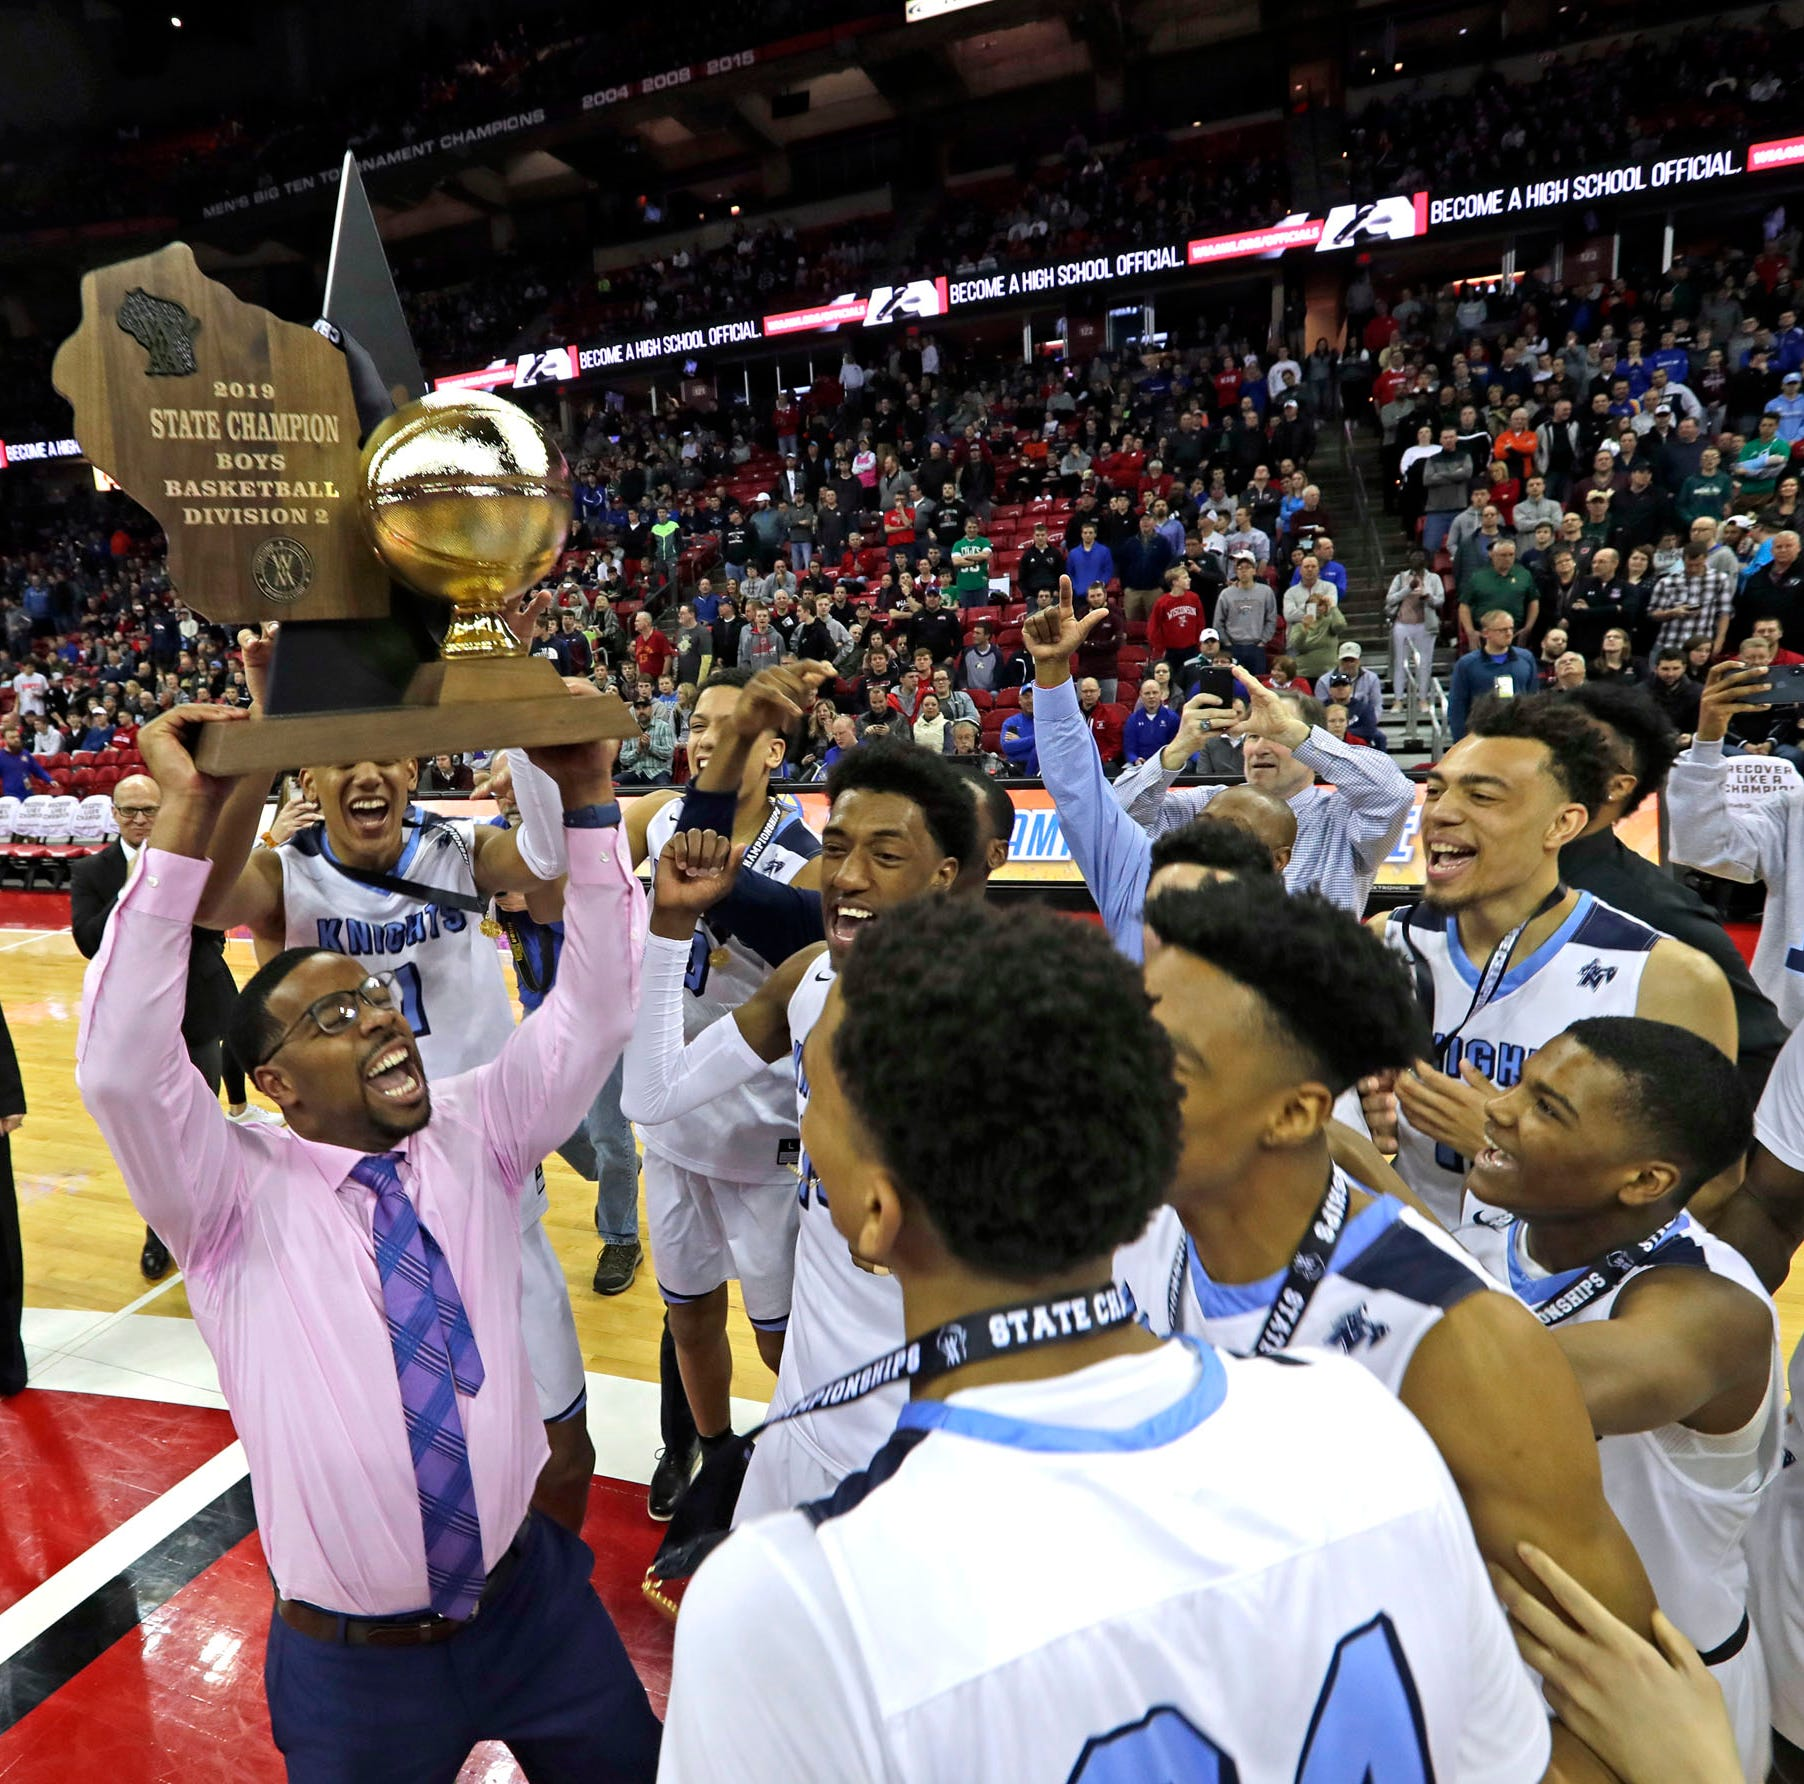 Nicolet captures its first state title with an electrifying performance against Milwaukee Washington